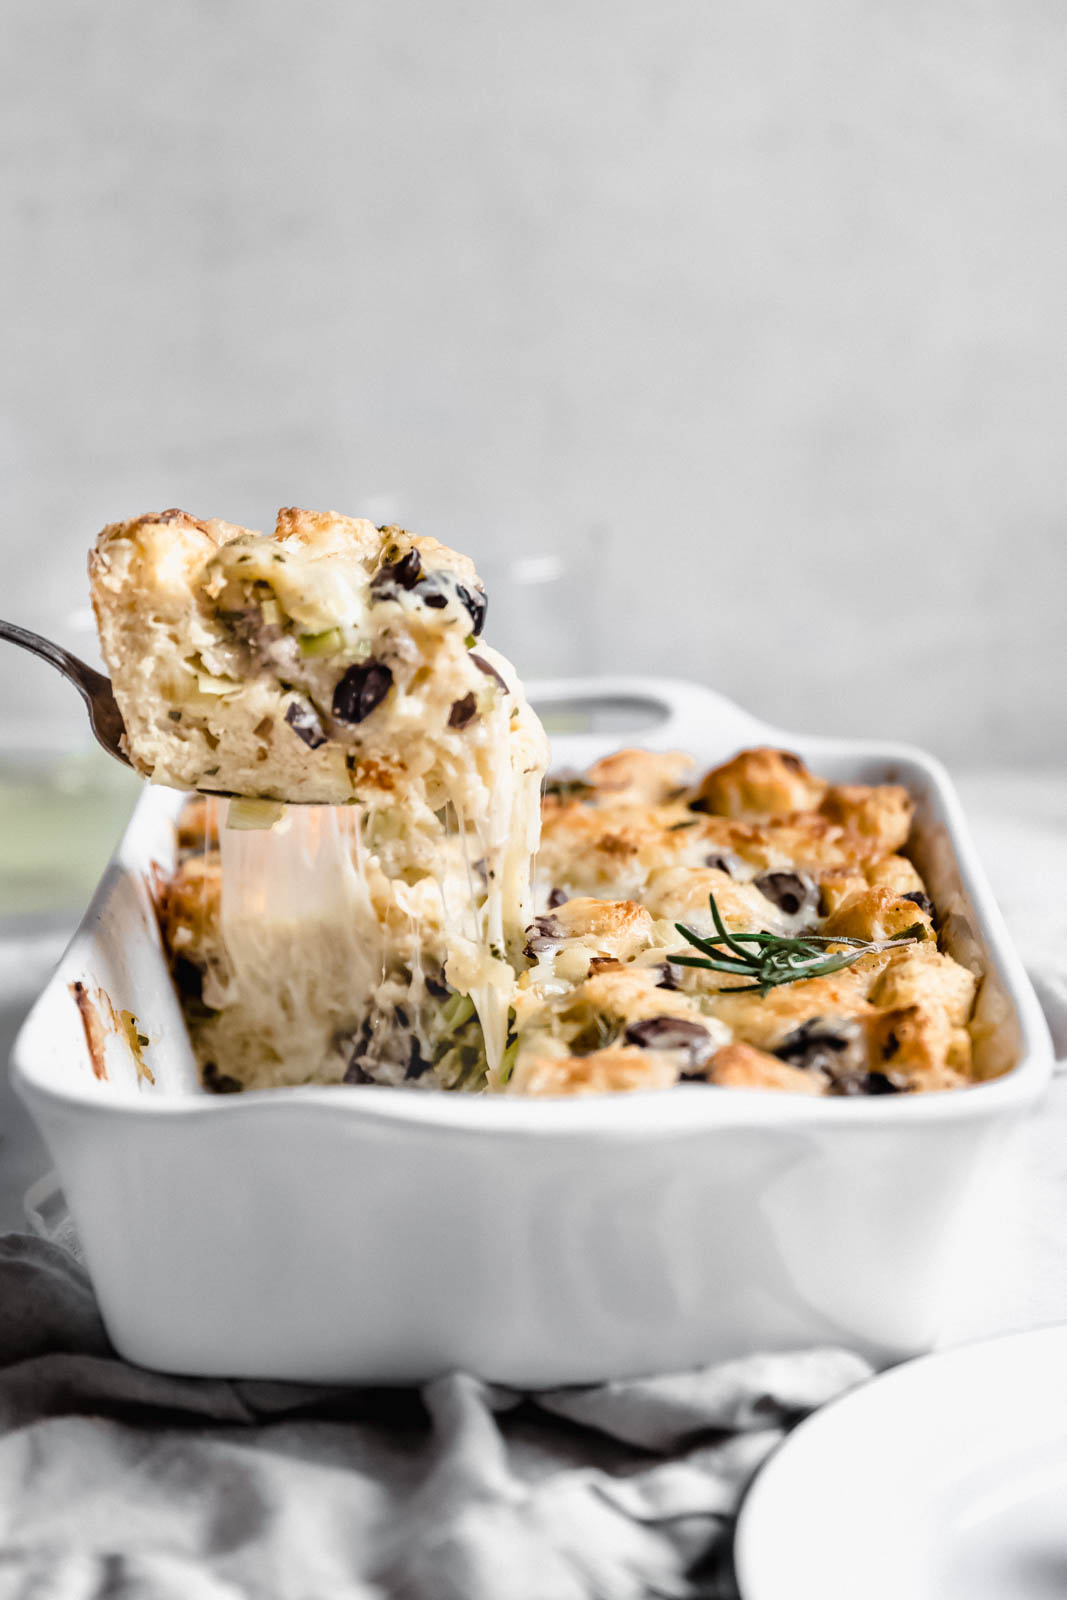 scooping out savory bread pudding from a casserole dish